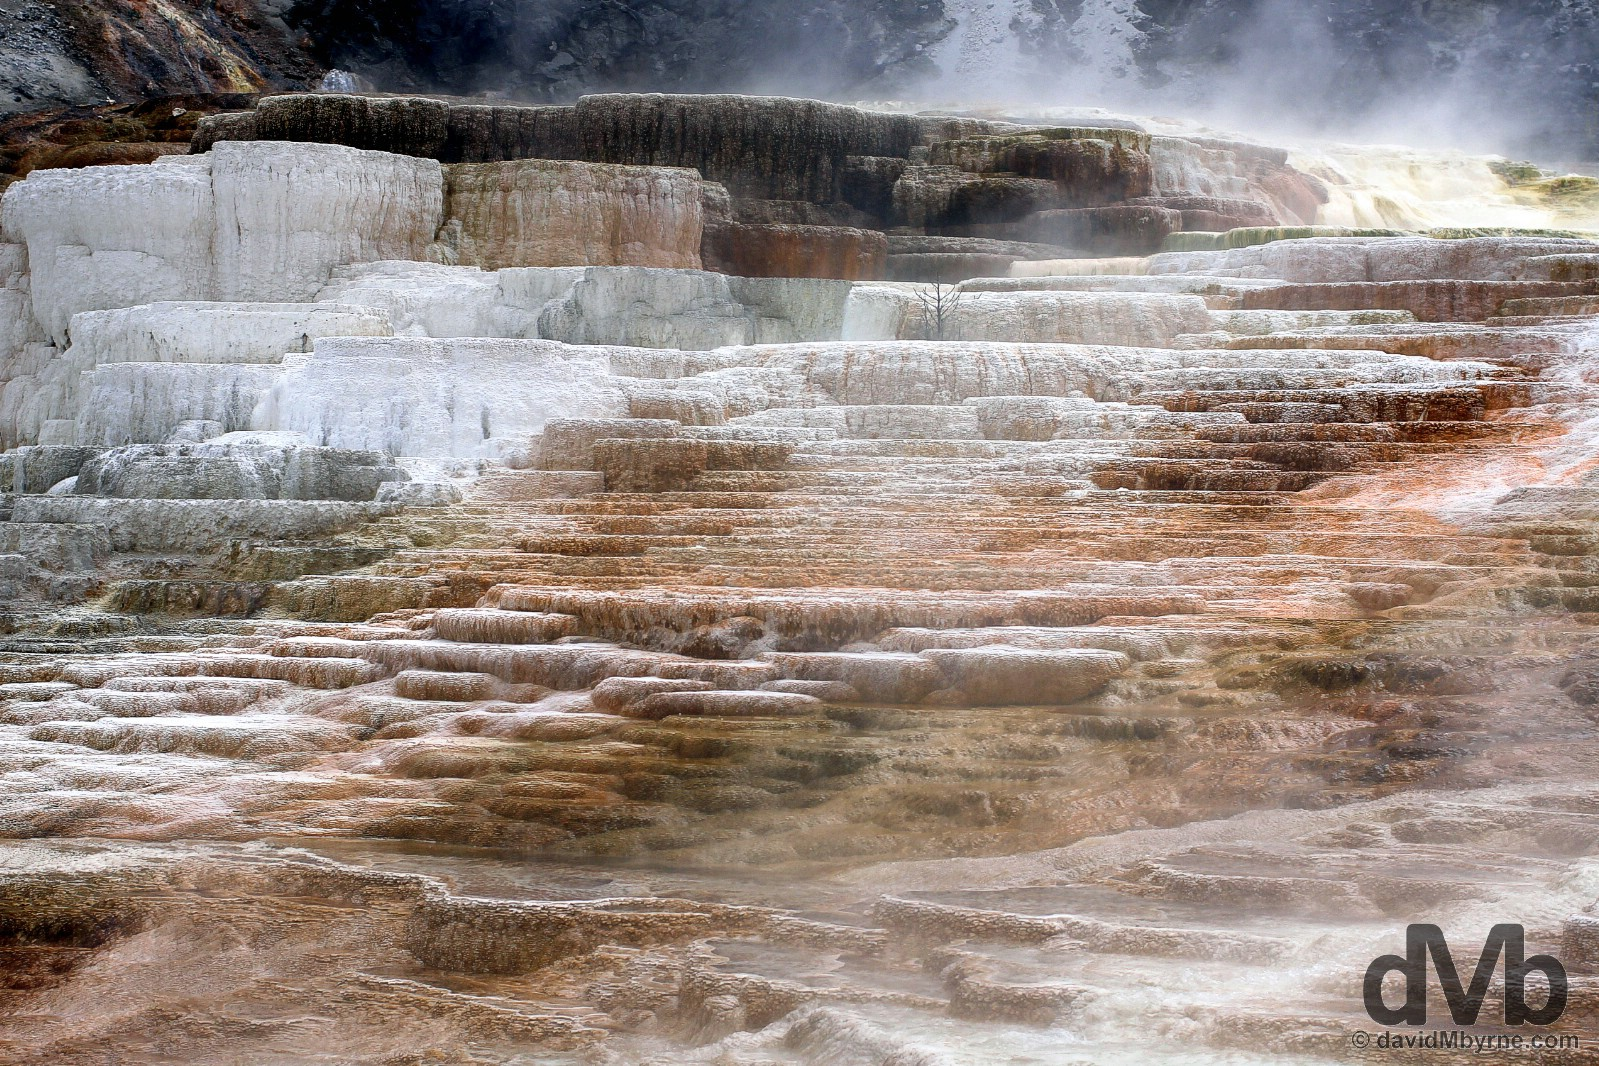 The terraces of Mammoth Springs, Mammoth Country, Yellowstone National Park, Wyoming, USA. September 4, 2016.